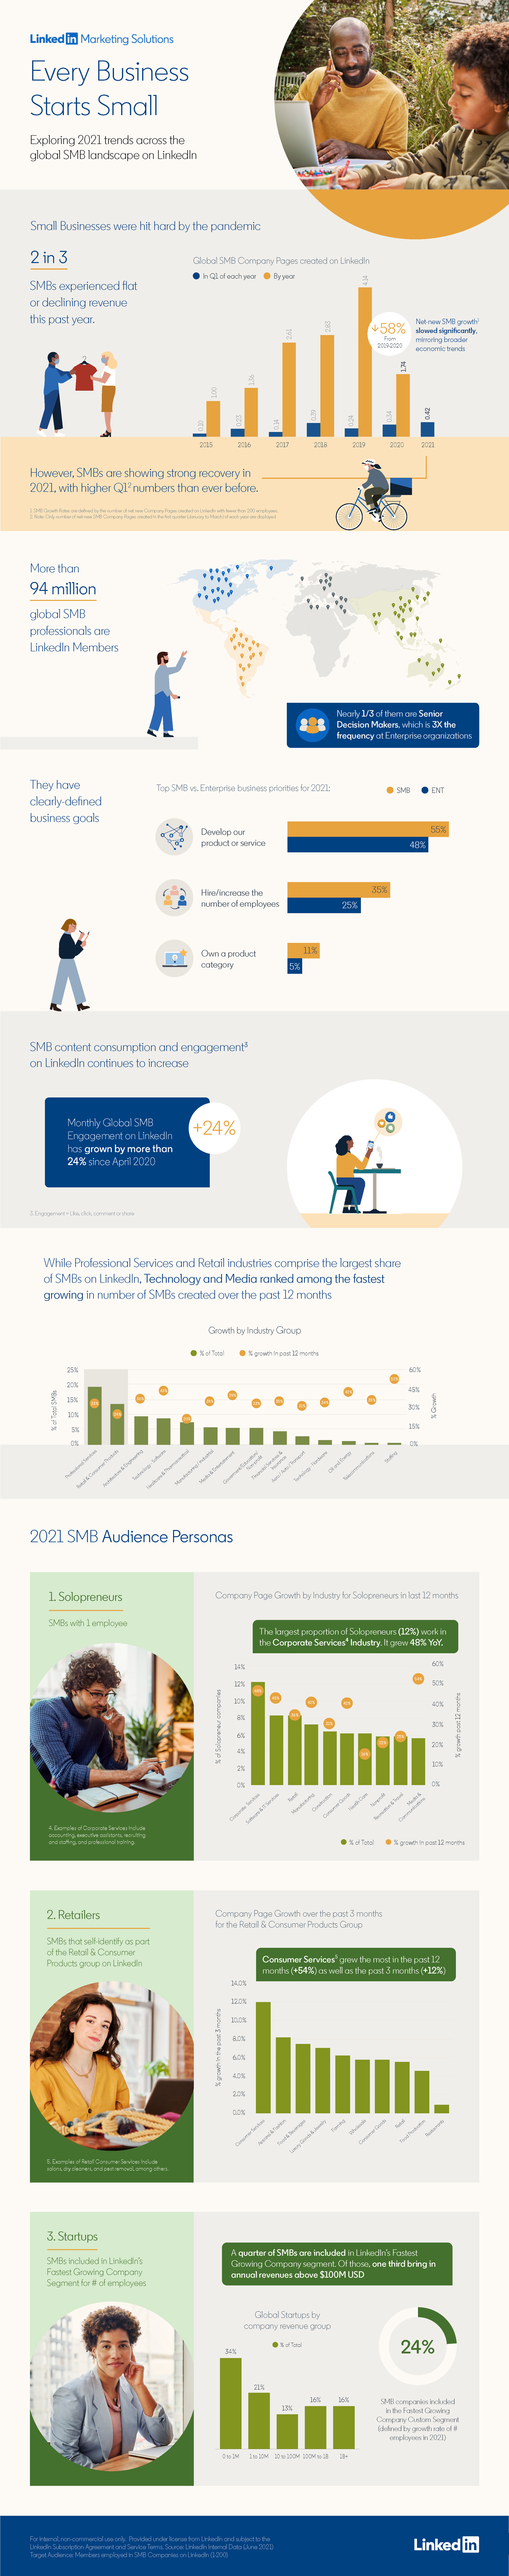 LinkedIn provides insights on small business resurgent activity (Infographic)